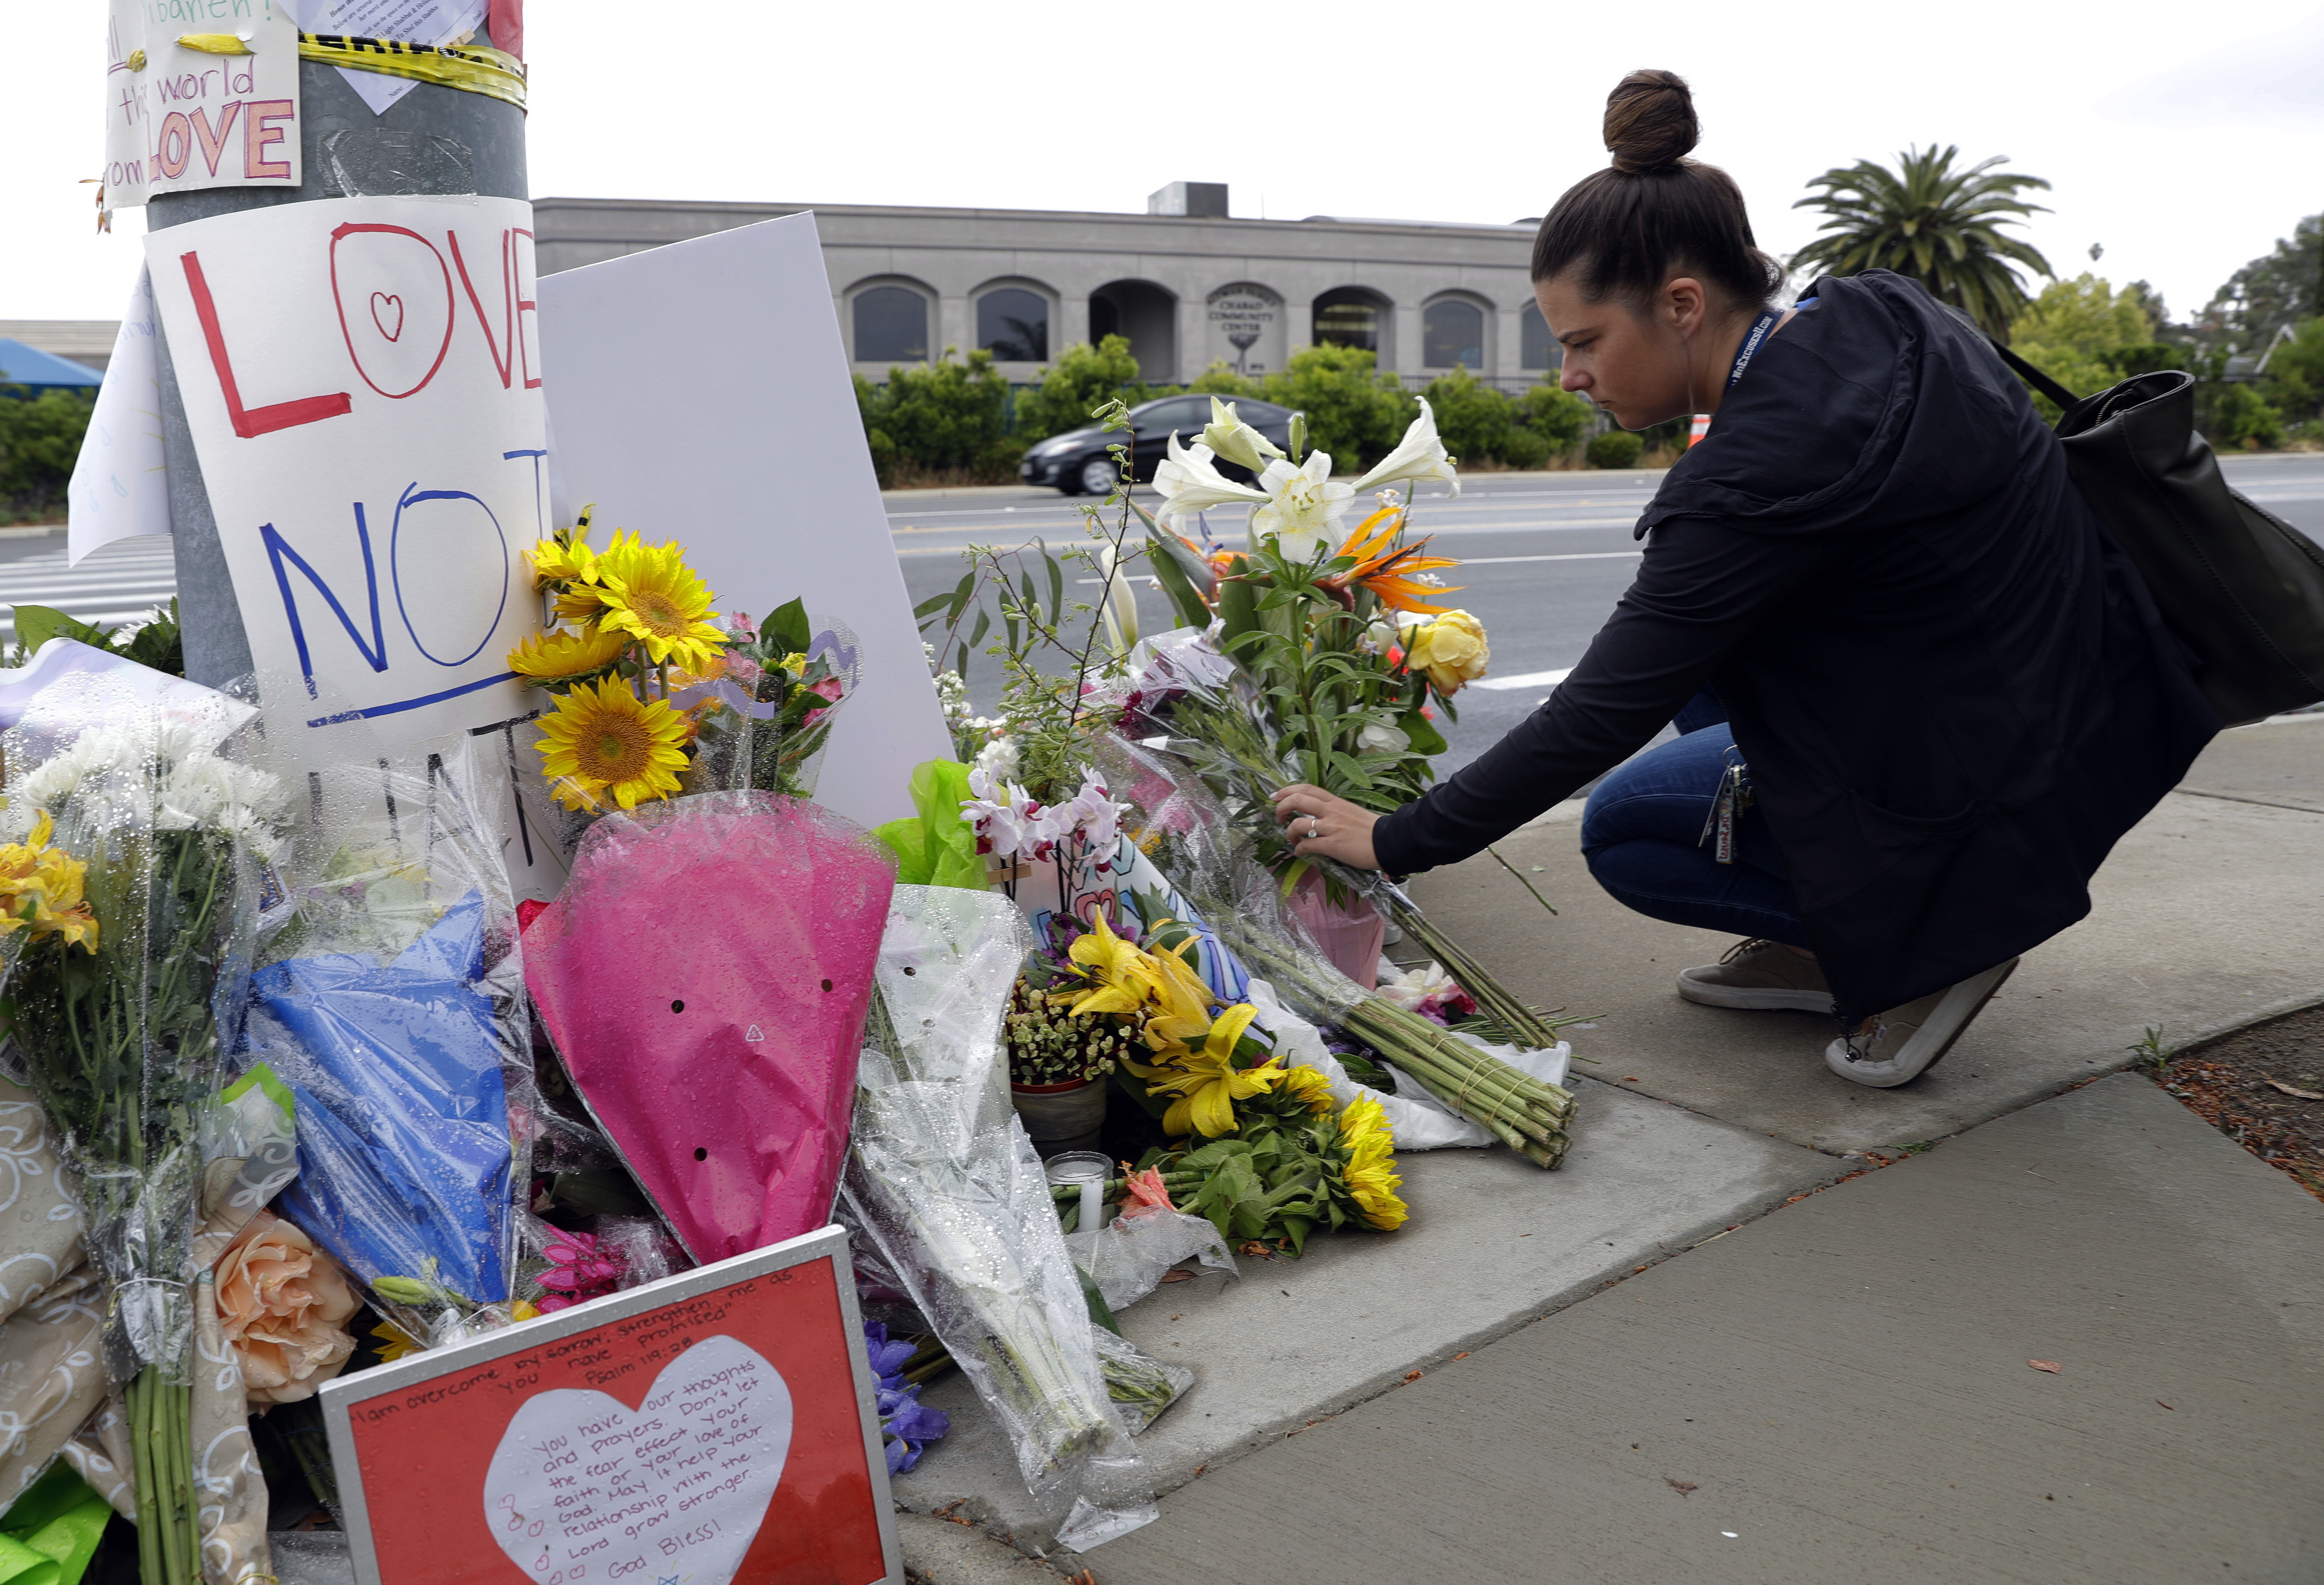 A woman leaves flowers on a growing memorial across the street from the Chabad of Poway synagogue in Poway, California, April 29, 2019.